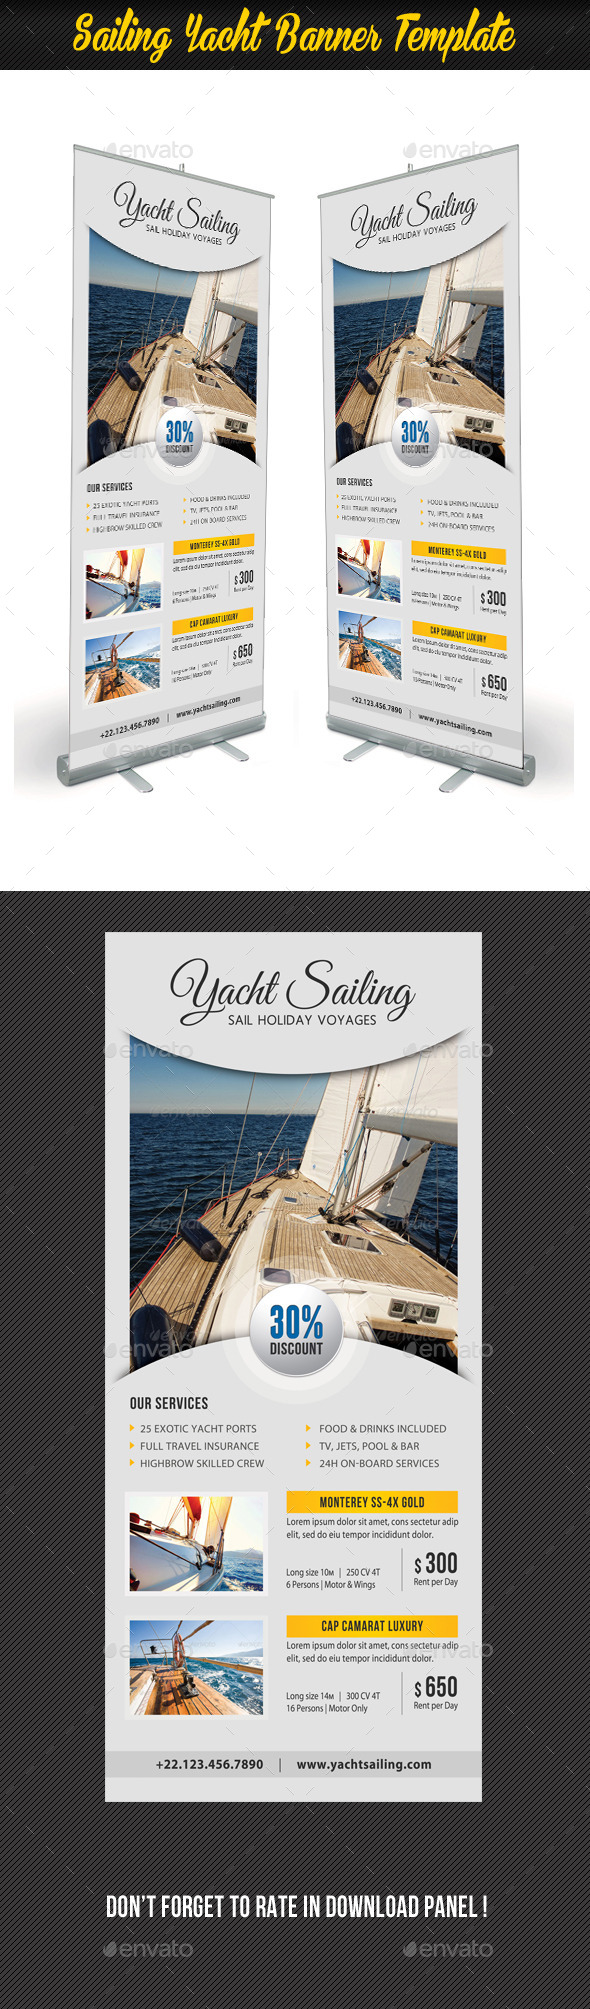 Sailing Yacht Banner Template 06 - Signage Print Templates